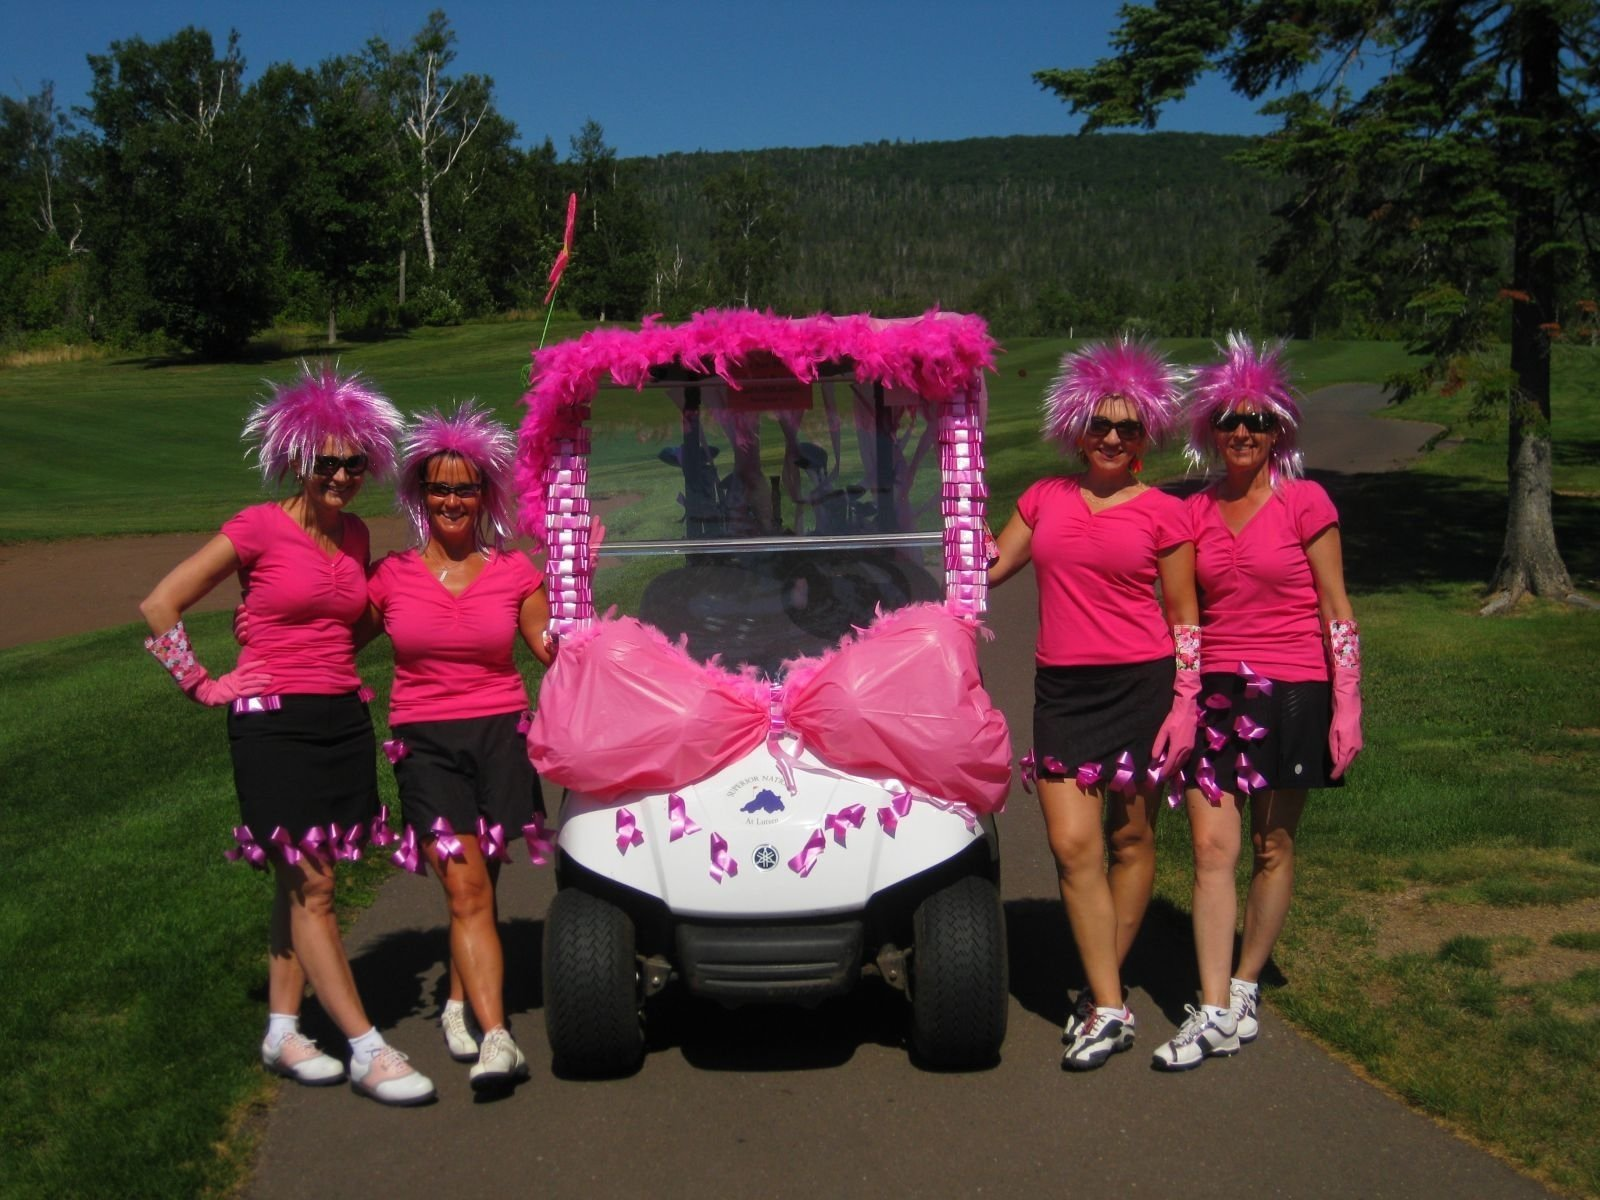 10 Awesome Breast Cancer Awareness Outfit Ideas golf cart decoration play for pink golf ideas pinterest golf 2020